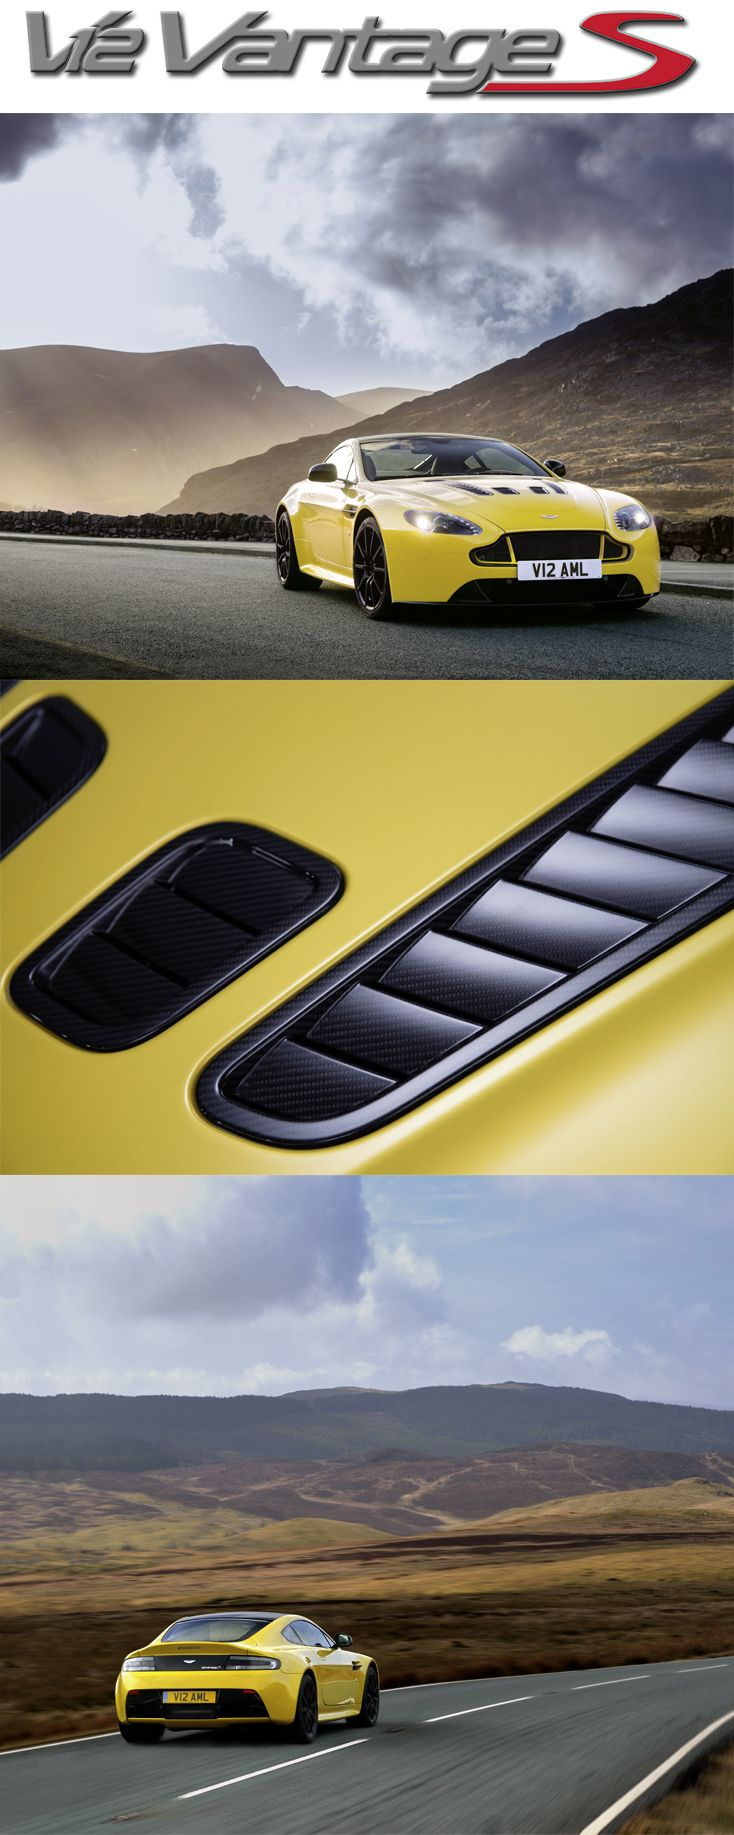 Aston martin v12 vantage s the most extreme aston martin discover more at http